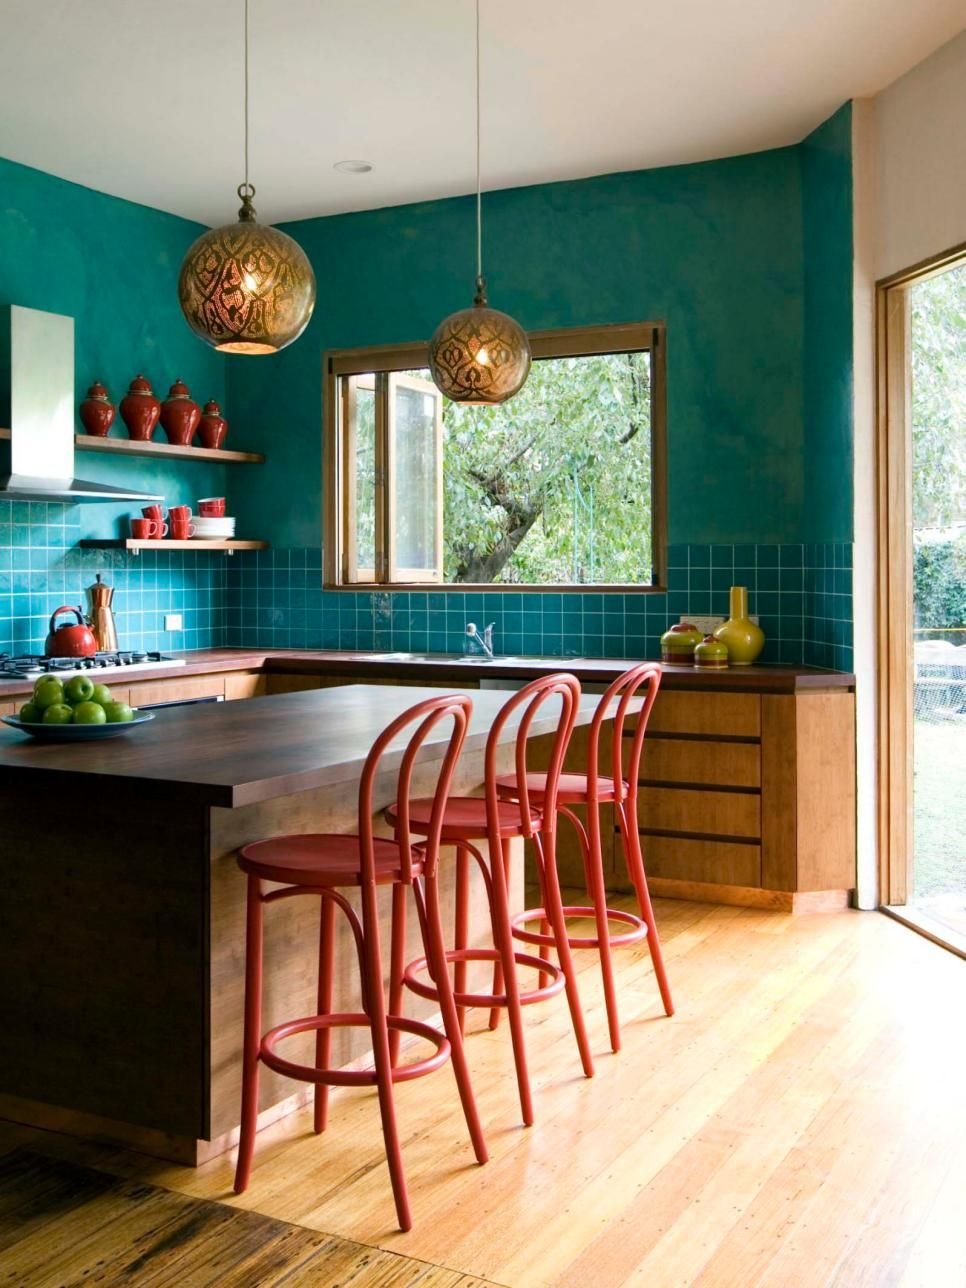 Navy yellow bedrooms house paint interior and yellow kitchen walls - Find This Pin And More On Kitchen Teal And Rust